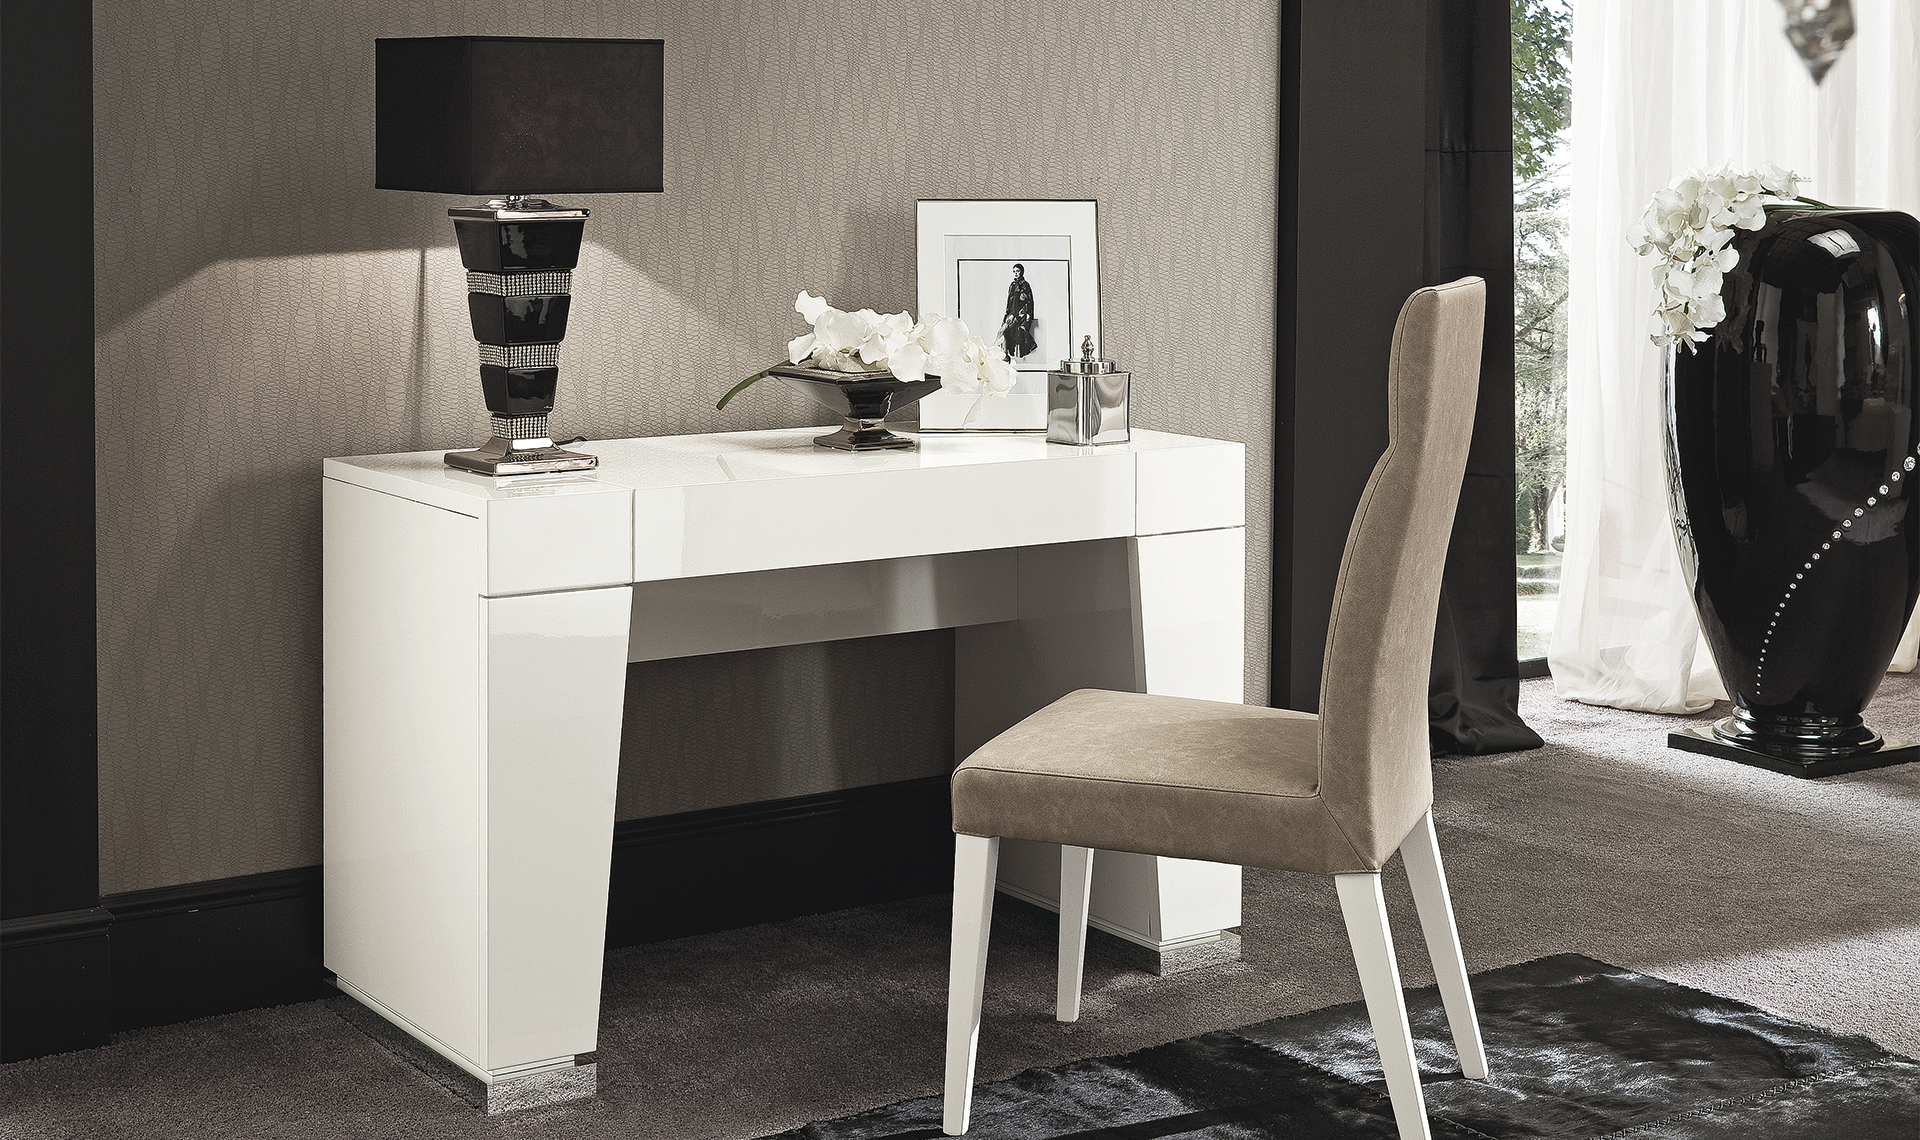 Canova Bedroom Vanity & Chair